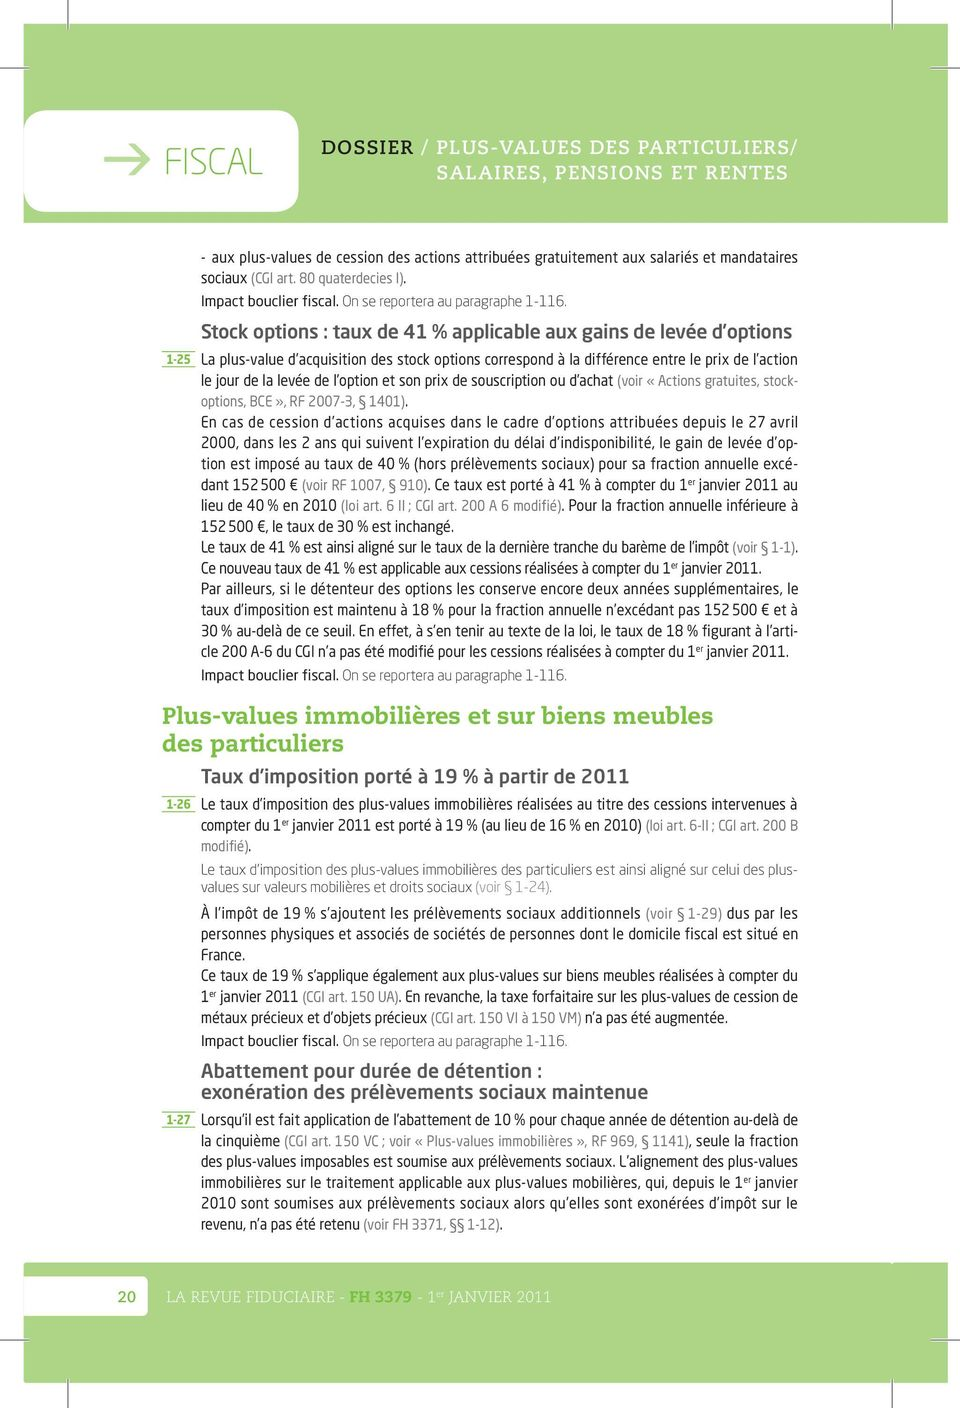 Stock options : taux de 41 % applicable aux gains de levée d options 1-25 La plus-value d acquisition des stock options correspond à la différence entre le prix de l action le jour de la levée de l